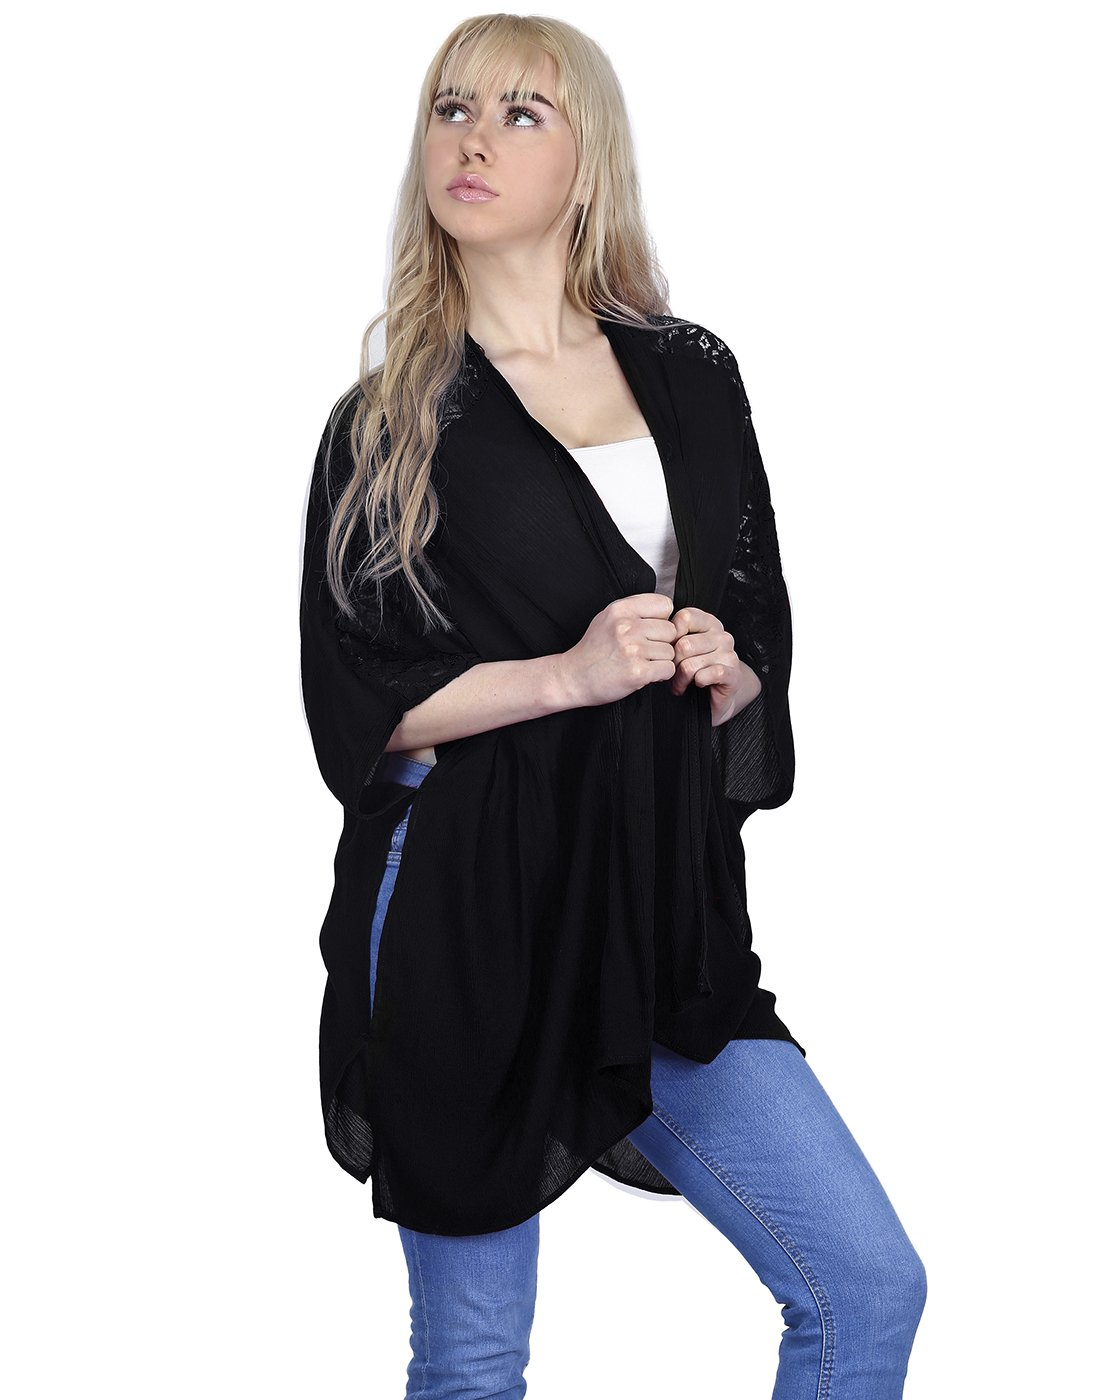 HDE Women's Plus Size Open Front Kimono Cardigan Loose Lace Sleeves Blouse Top (Black, 3X)